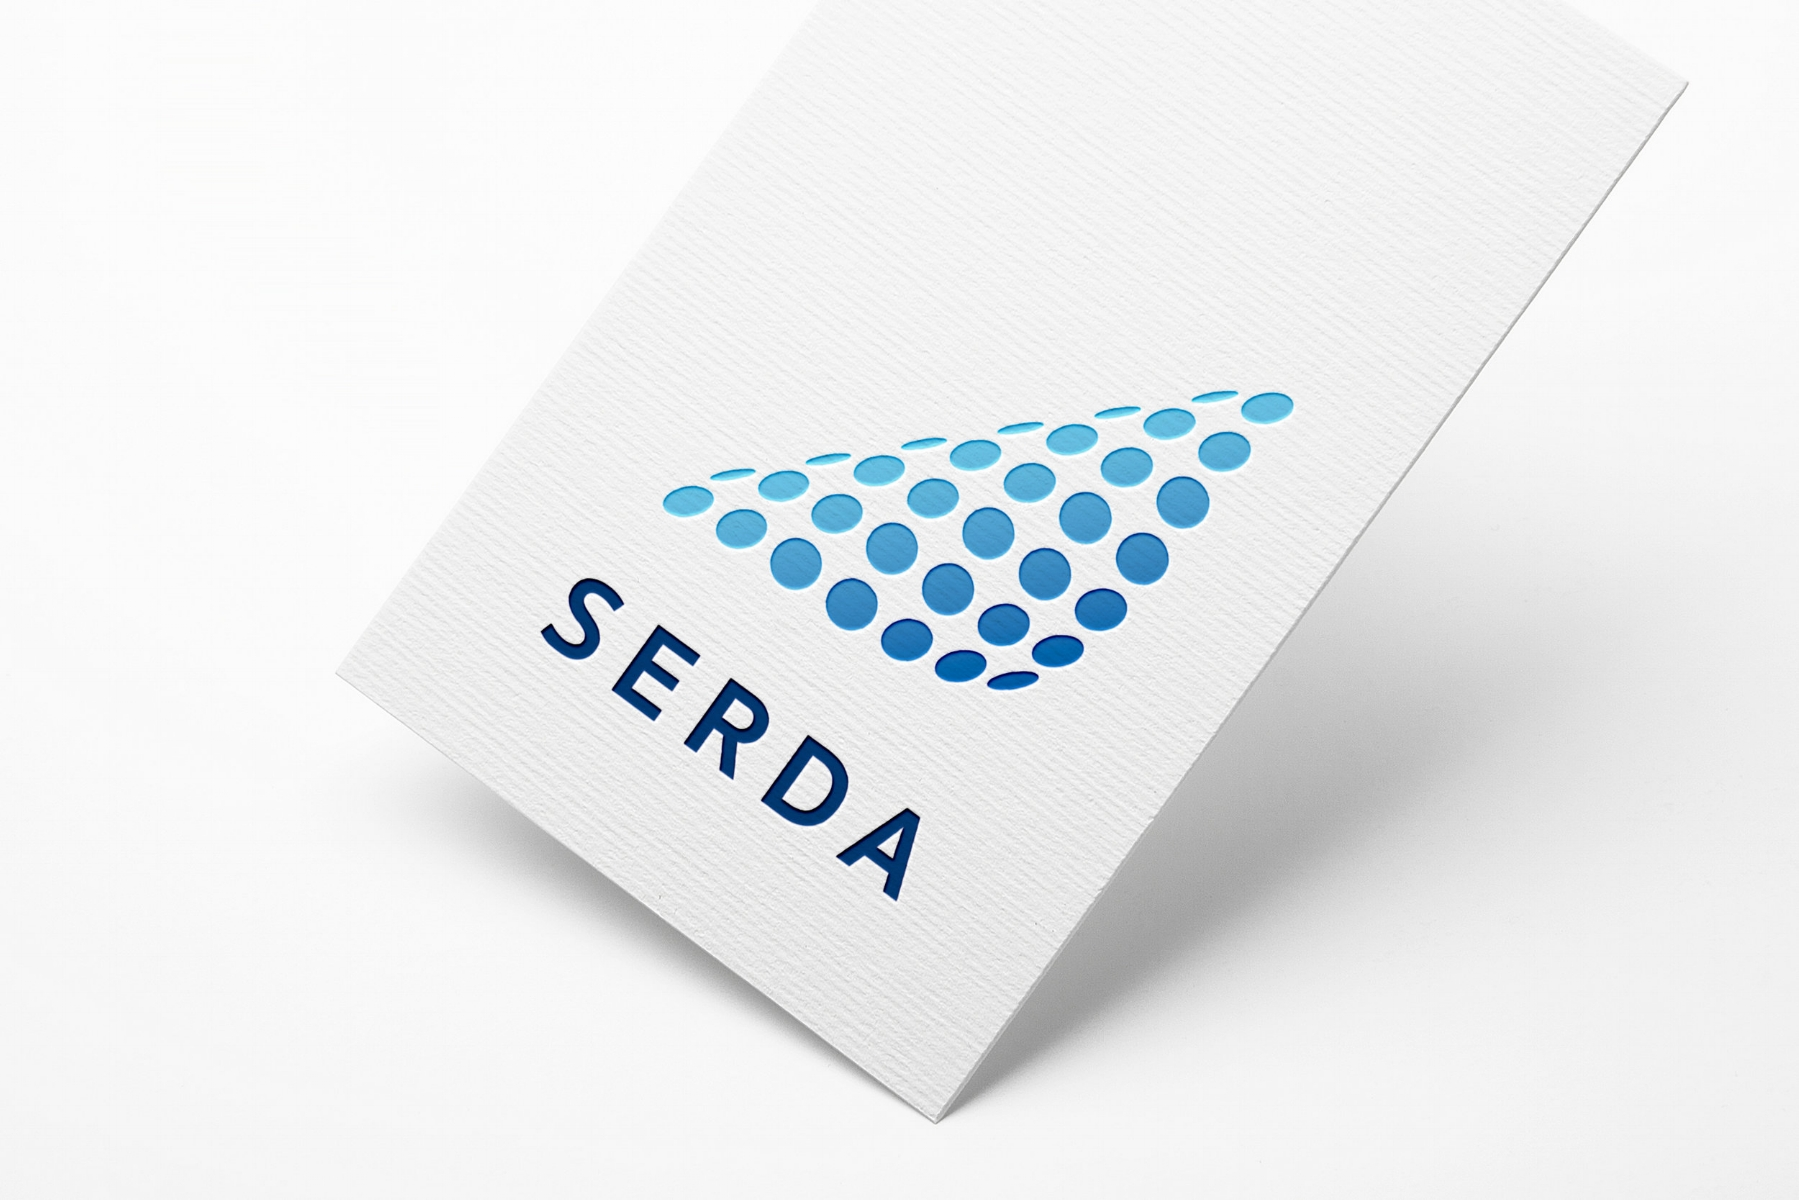 Serda Medical Industries